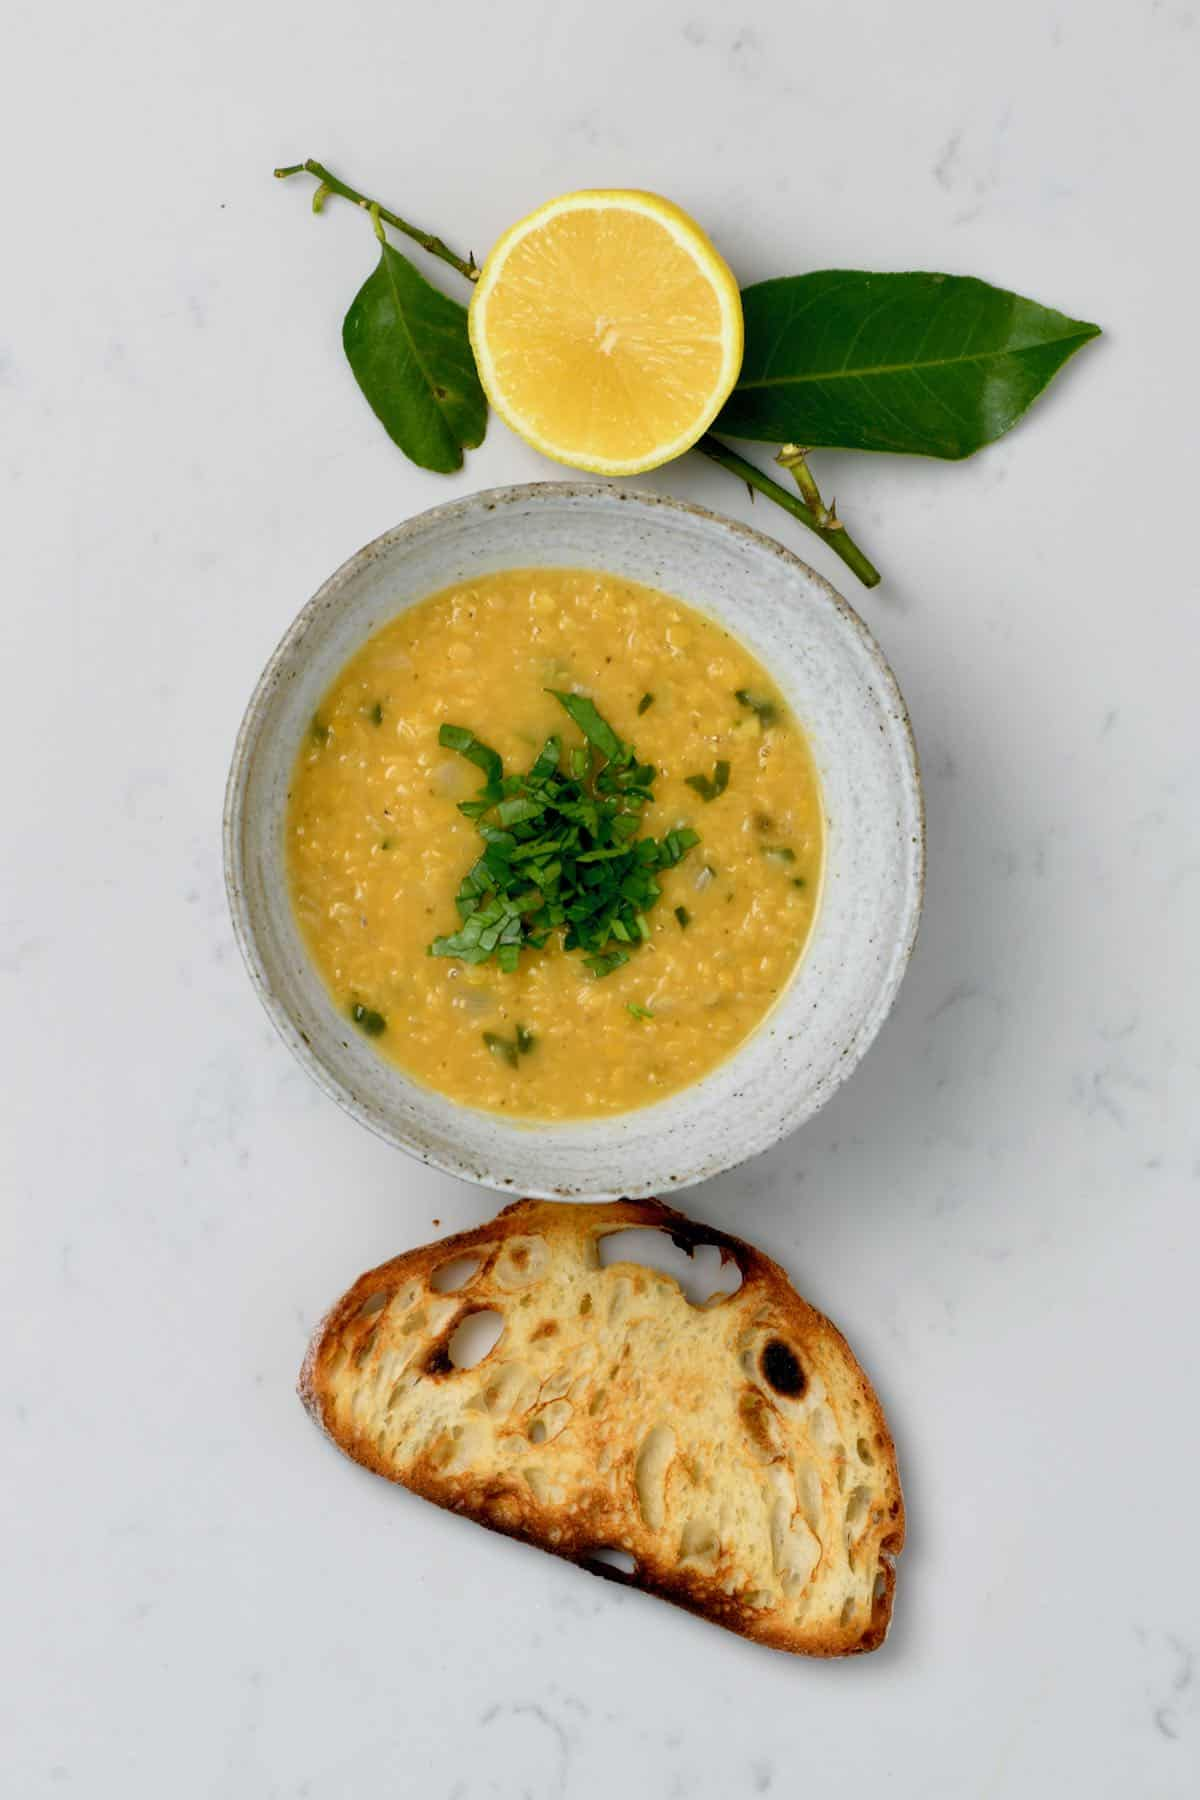 A serving of lentil soup and a piece of bread